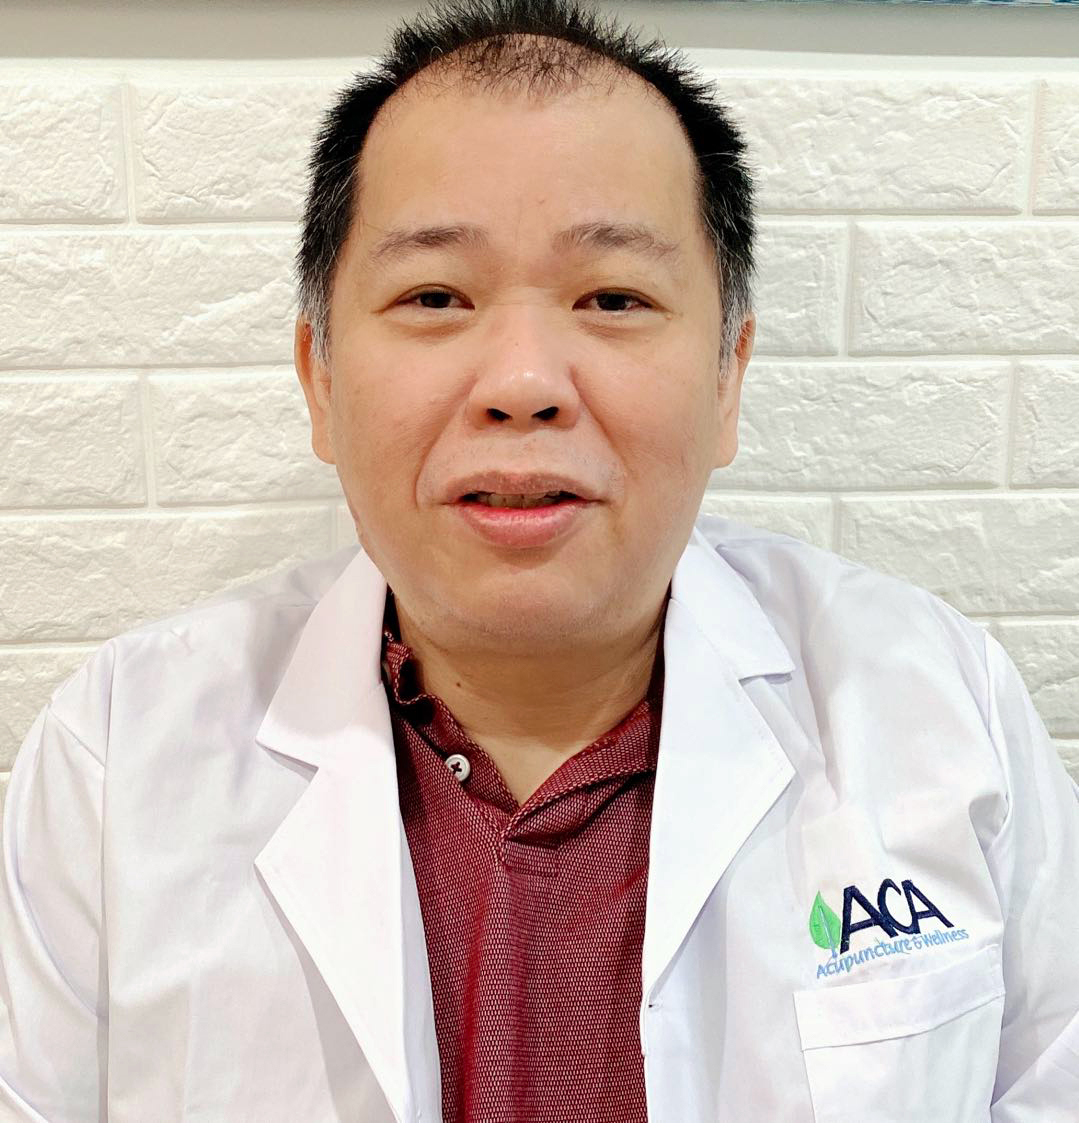 Dr. Chunn is a New York State licensed acupuncturist and massage therapist